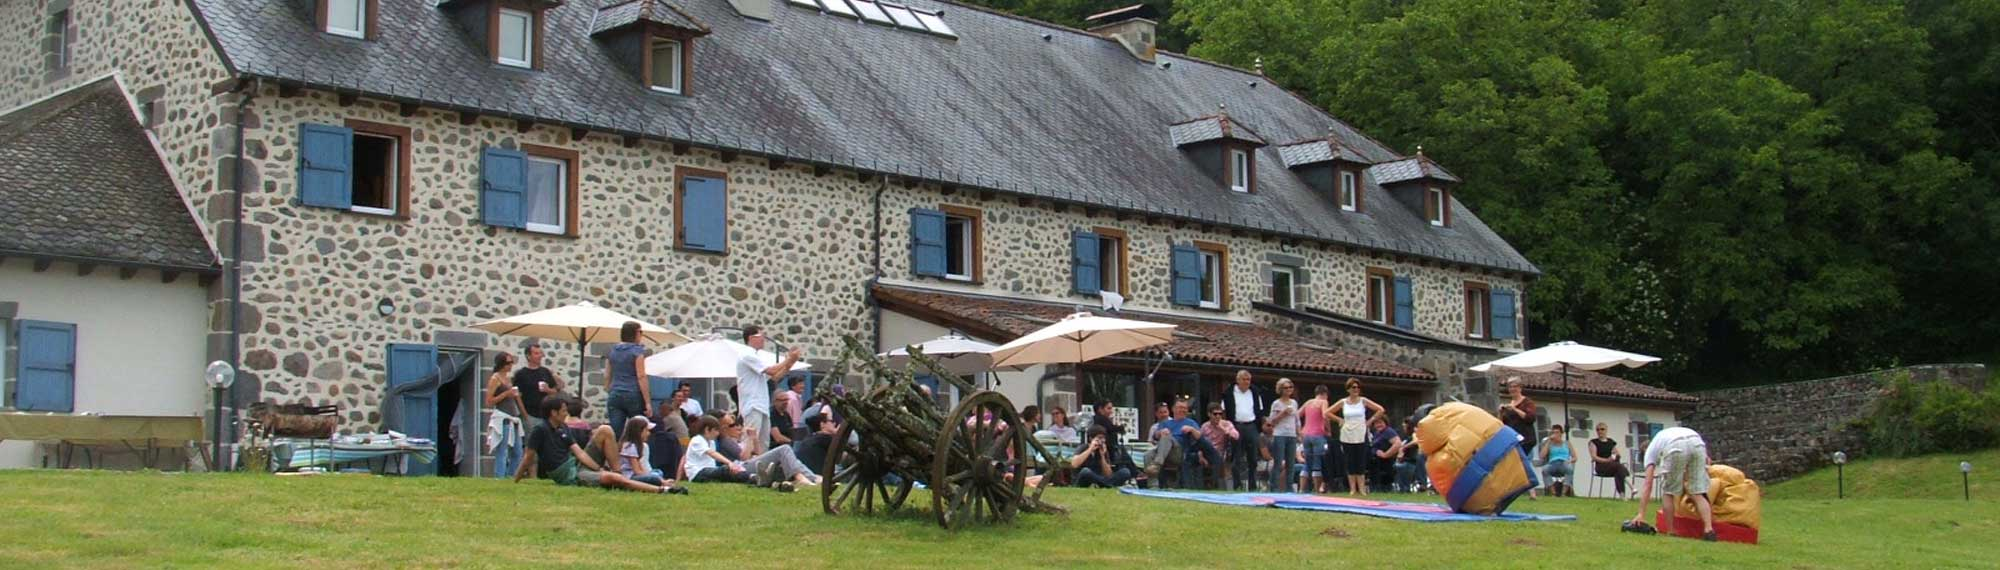 sejours groupe cantal salers